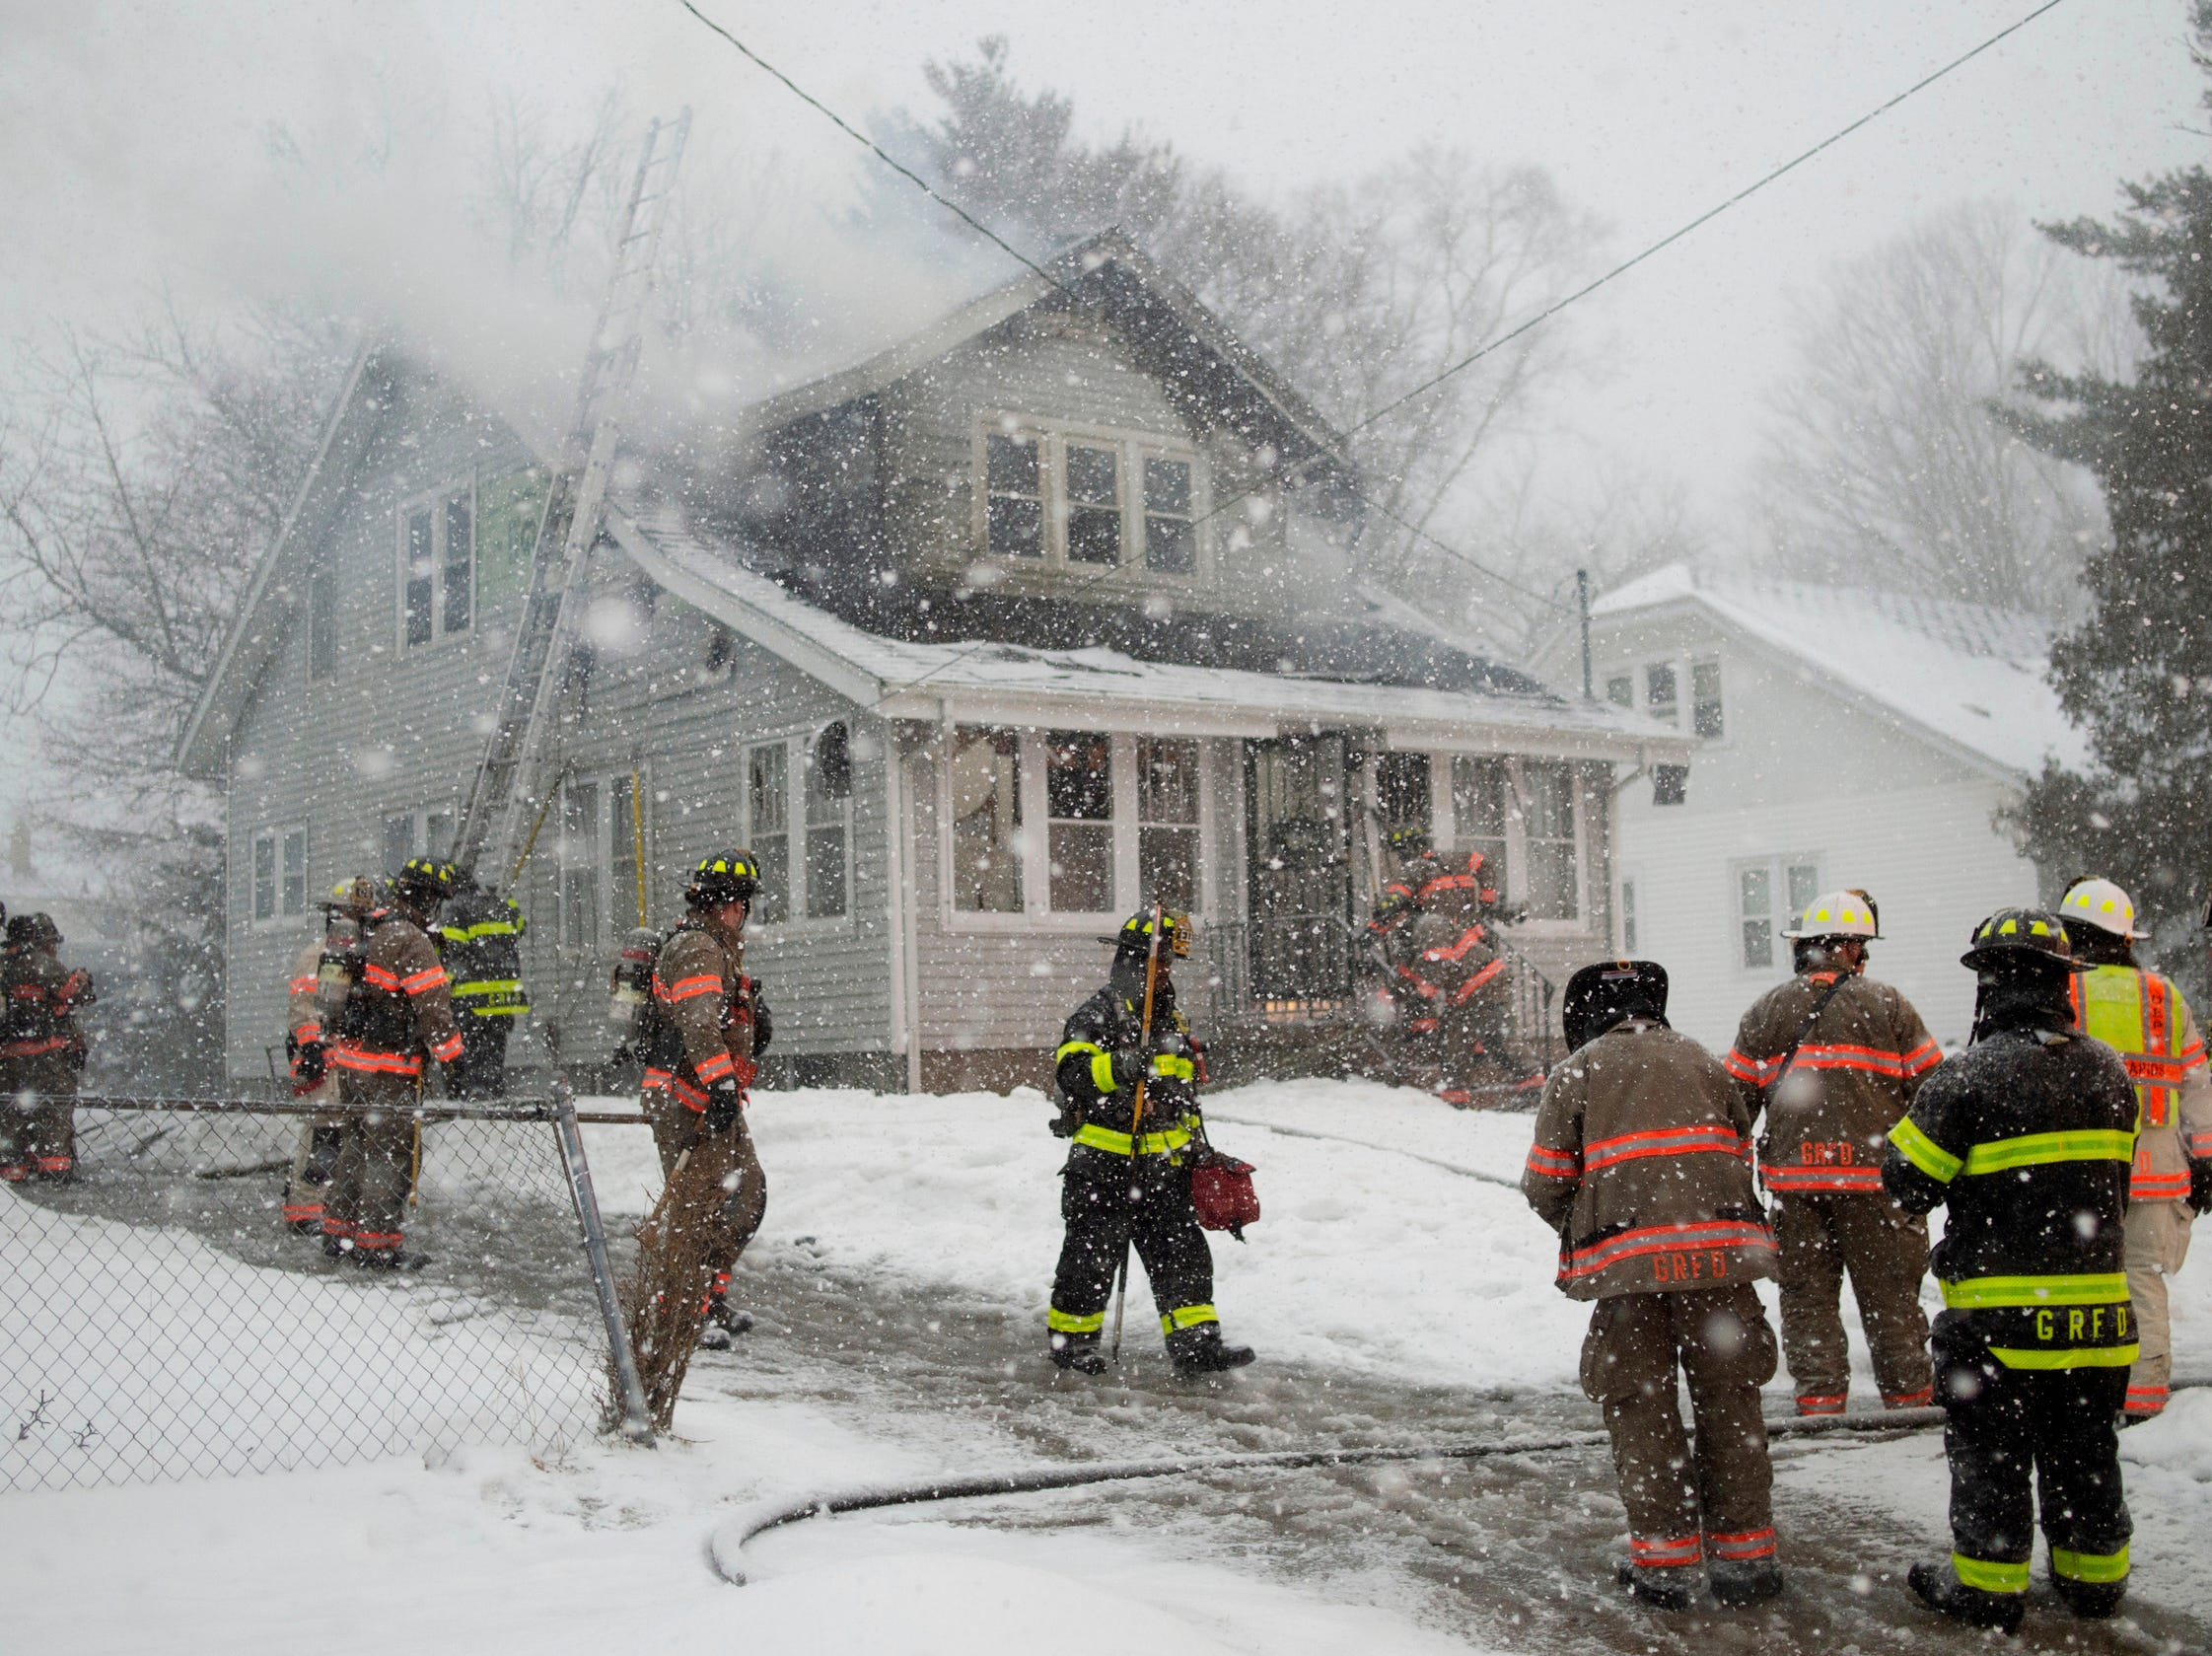 Firefighters battle a house fire in Grand Rapids, Mich., on Friday, Feb. 8, 2019. The temperatures froze hydrants and complicated their response.